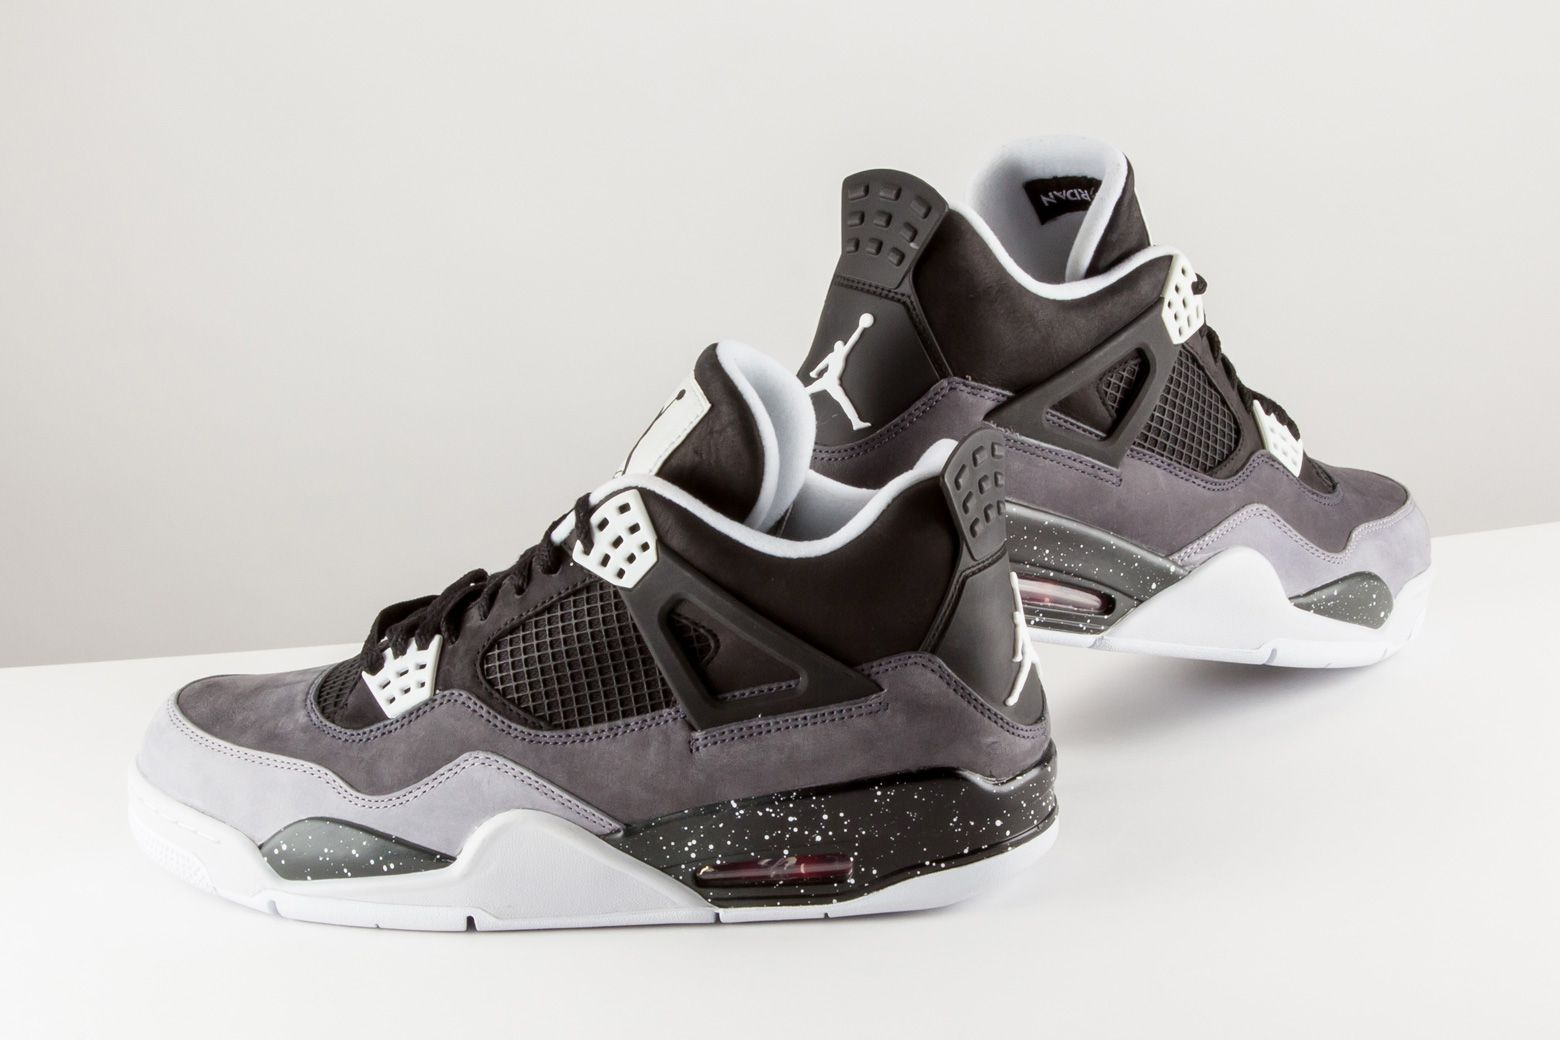 46dbebca6c8 Grey and black suede are a stunning combination on this Air Jordan 4 Retro  from 2013's